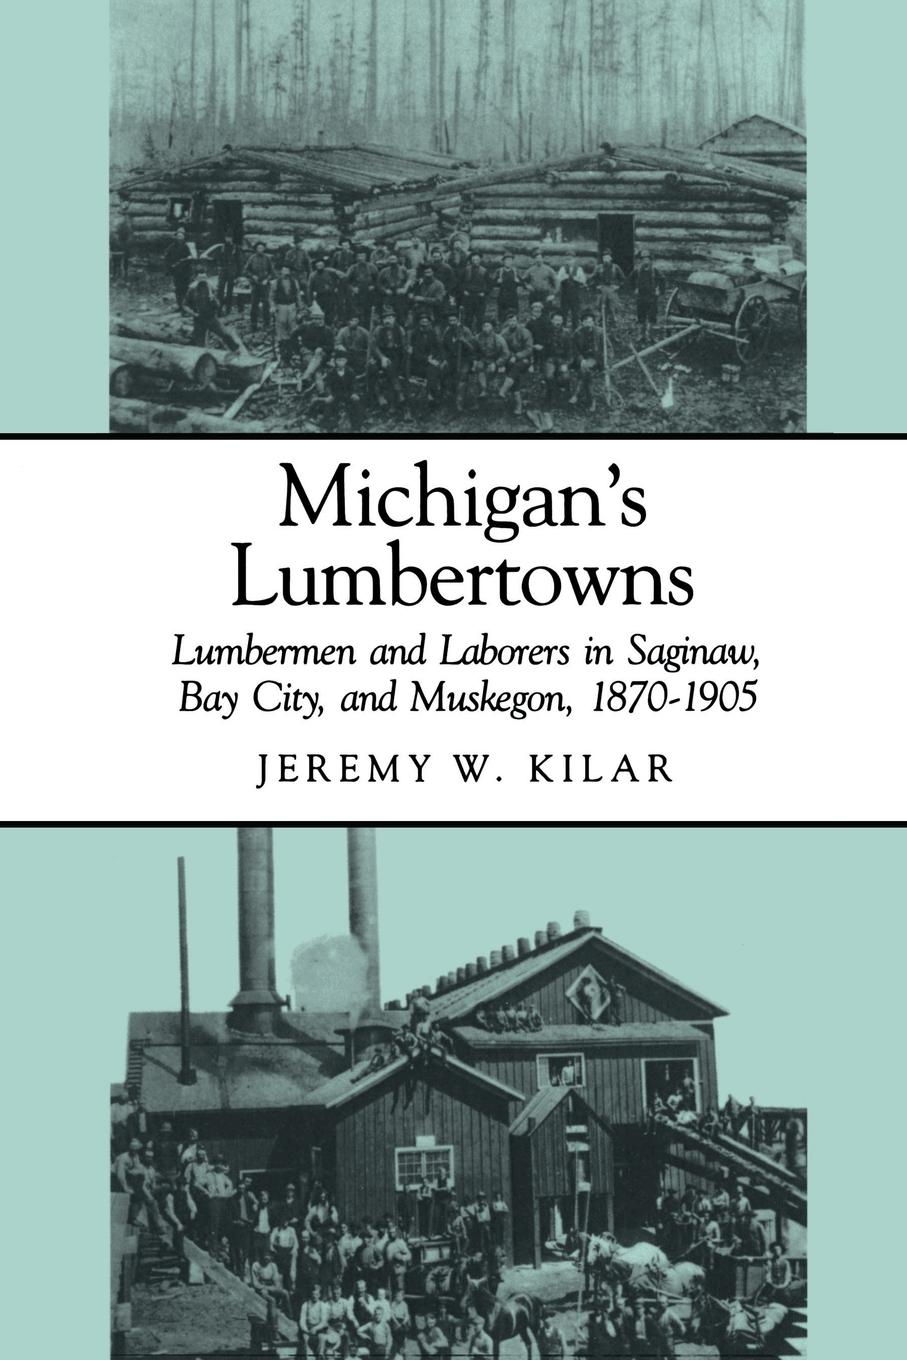 Jeremy W Kilar Michigan.s Lumbertowns. Lumberman and Laborers in Saginaw, Bay City, and Muskegon, 1870-1905 richard albright death of the chesapeake a history of the military s role in polluting the bay